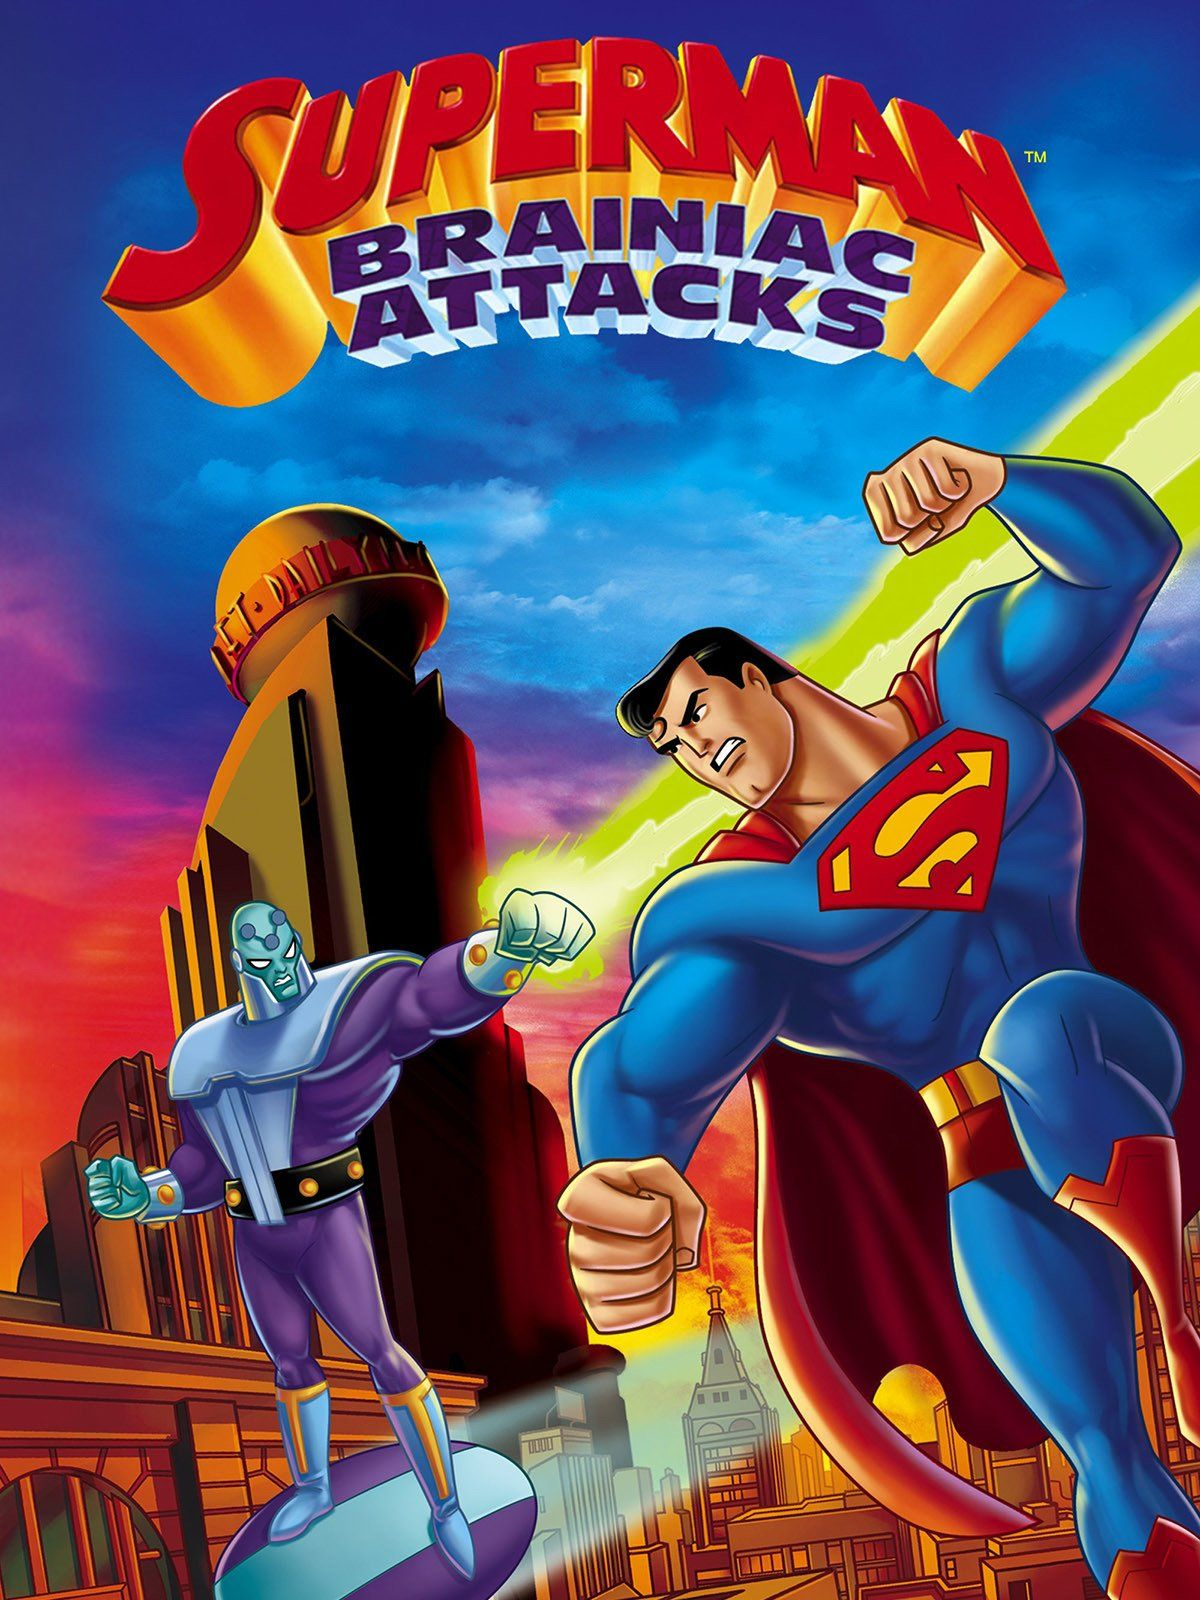 DC Animated Movie (2006) Animation, Movies, Dc comics